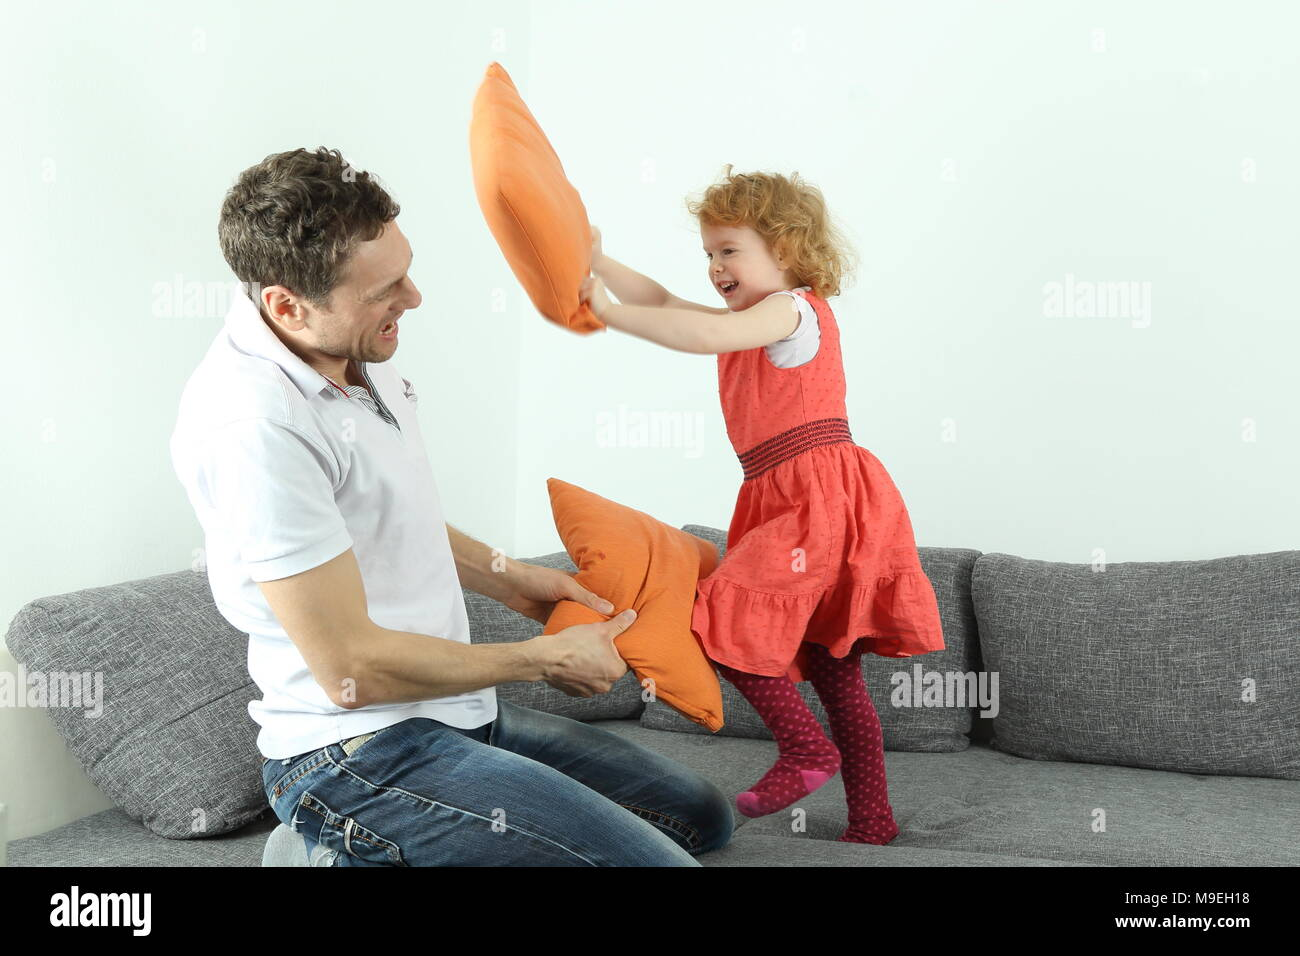 A Pillow fight dad with child or father with daughter - Stock Image